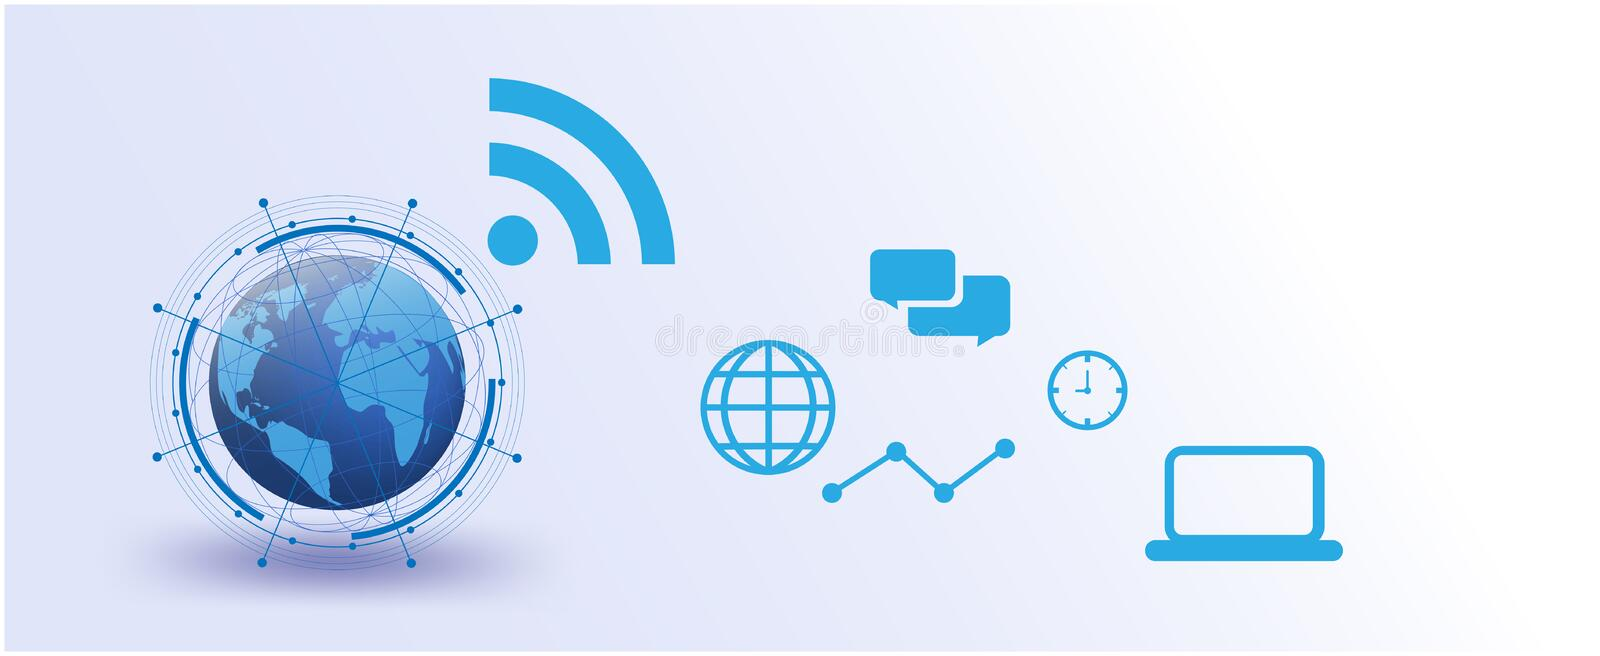 Global network,Internet of Things Vector futuristic,system,connections,networking futuristic social media. communication data vector illustration